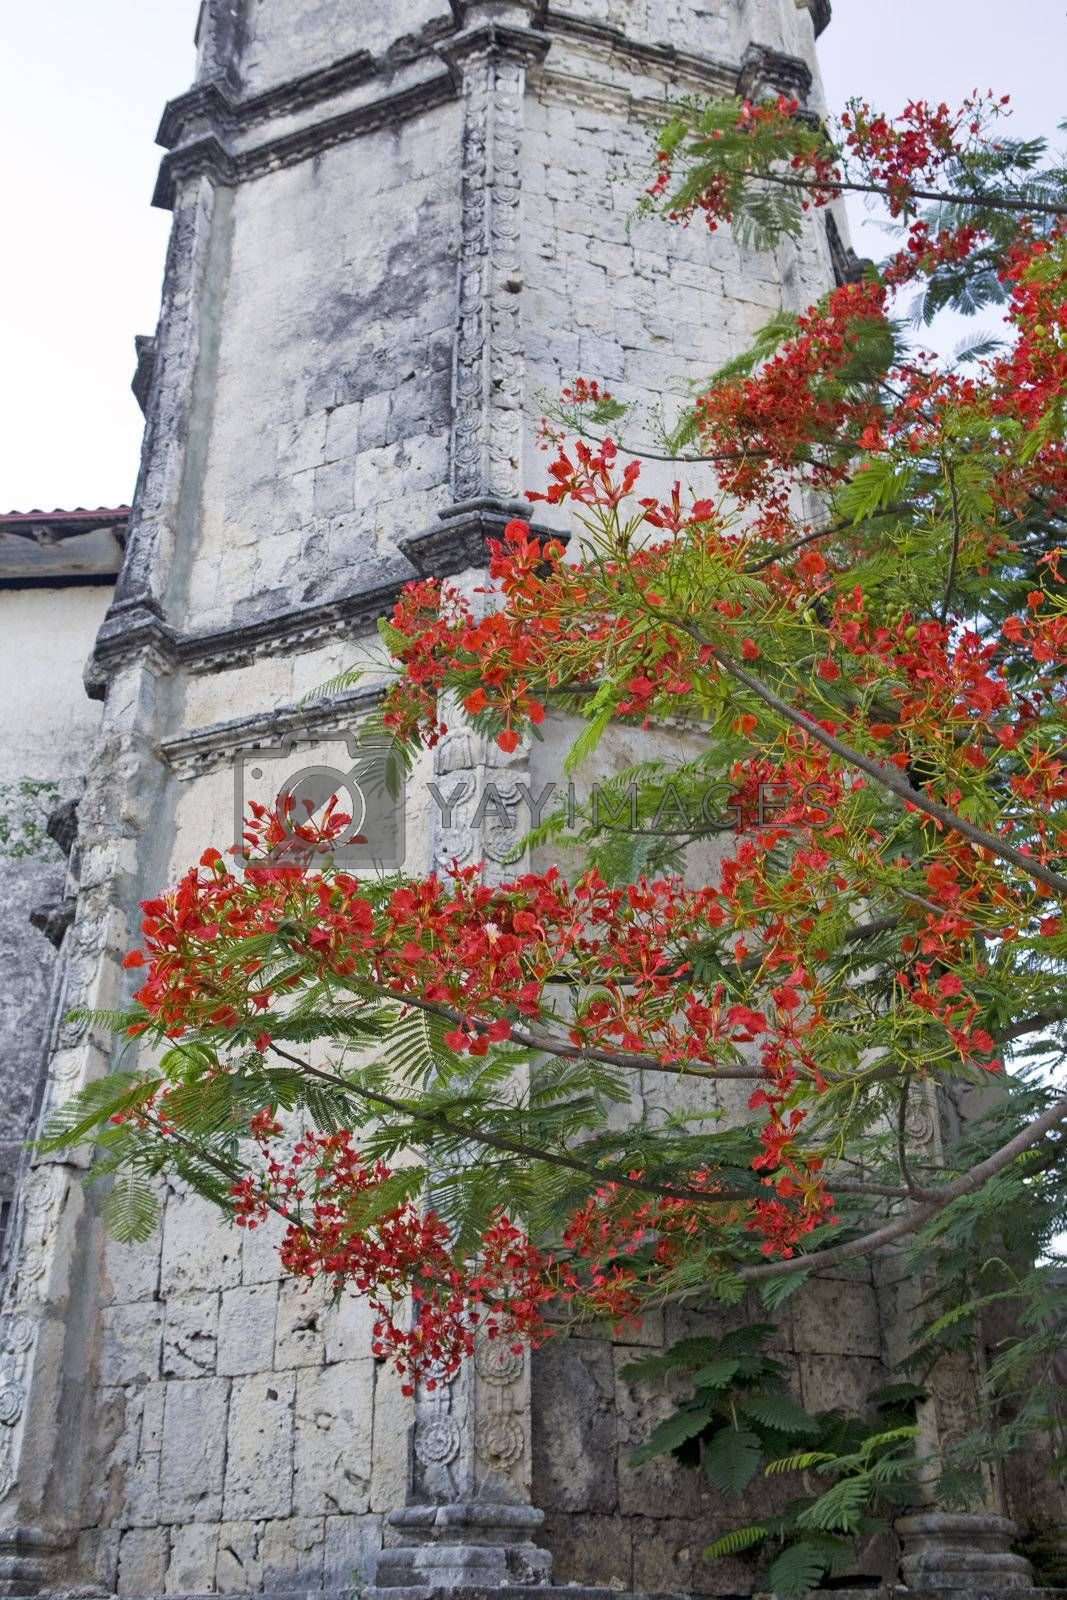 Vibrant red blossoms of the Flamboyant Flame Tree, Delonix regia, frame one of the limestone belltowers of the Baroque architectural design of the San Nicolas Tolentio parish church in Dimiao, Bohol Island, Bohol, Philippine Islands.